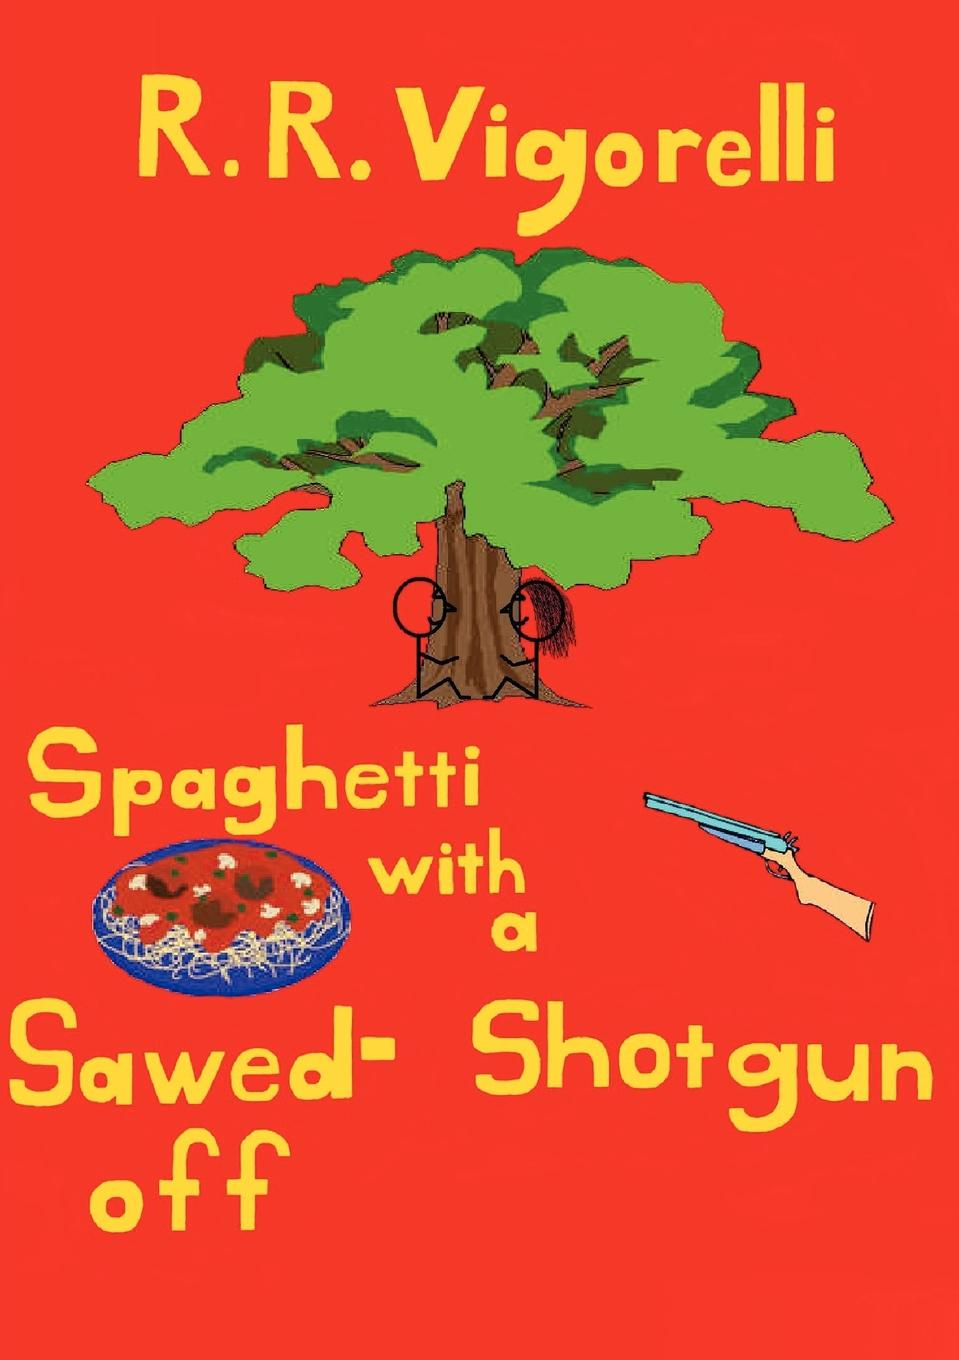 R. R. Vigorelli Spaghetti with a Sawed-Off Shotgun alice meyer what is virginity and who is a virgin all about virginity why and towhom is it needed